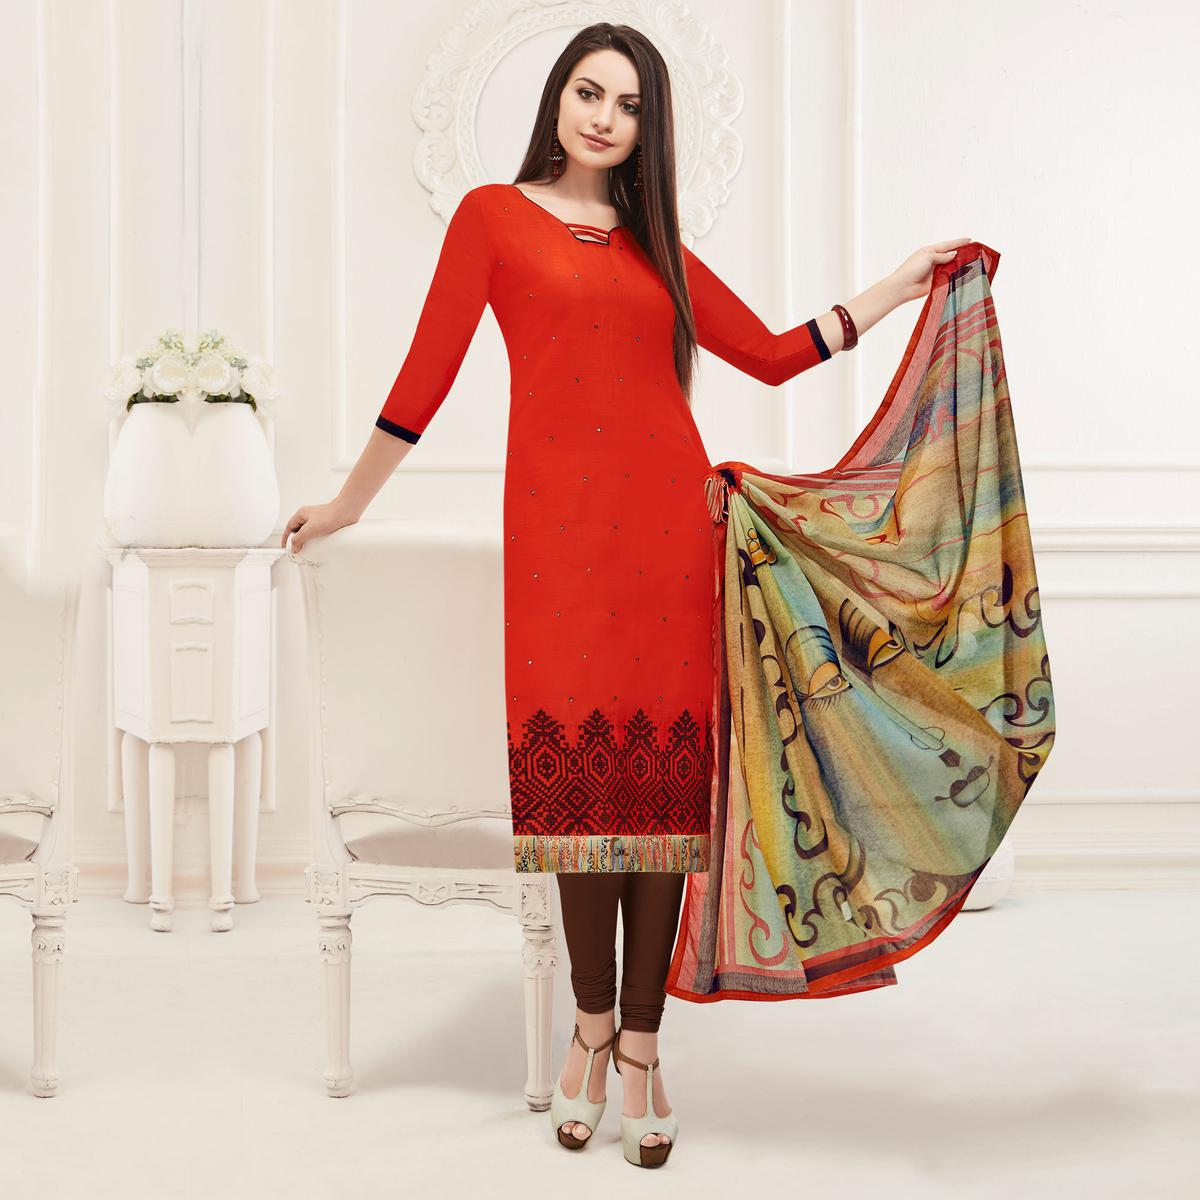 fa0ad0ecb6 Buy Glowing Red Colored Embroidered Cotton Salwar Suit for womens online  India, Best Prices, Reviews - Peachmode